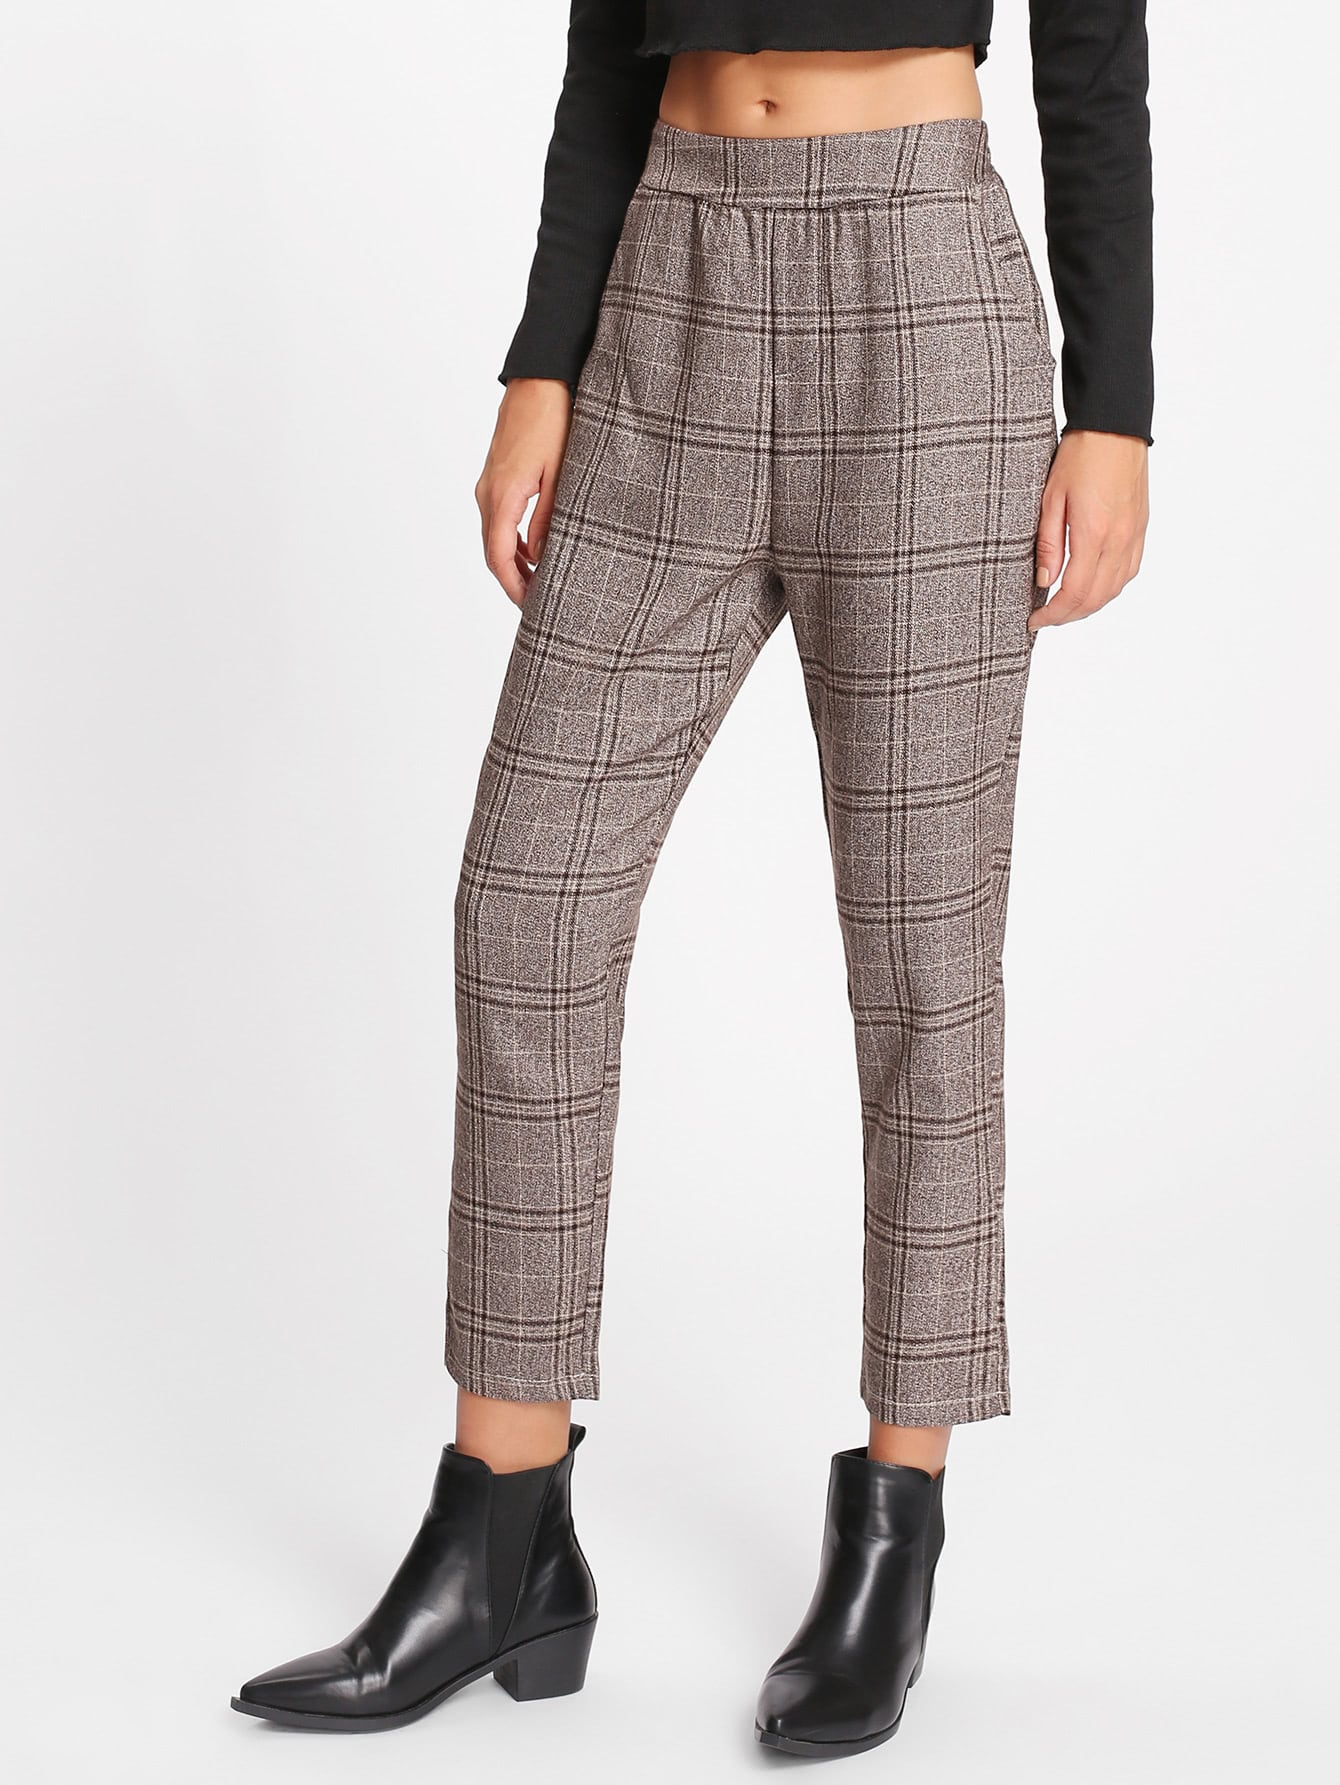 Tartan Plaid Capri Pants